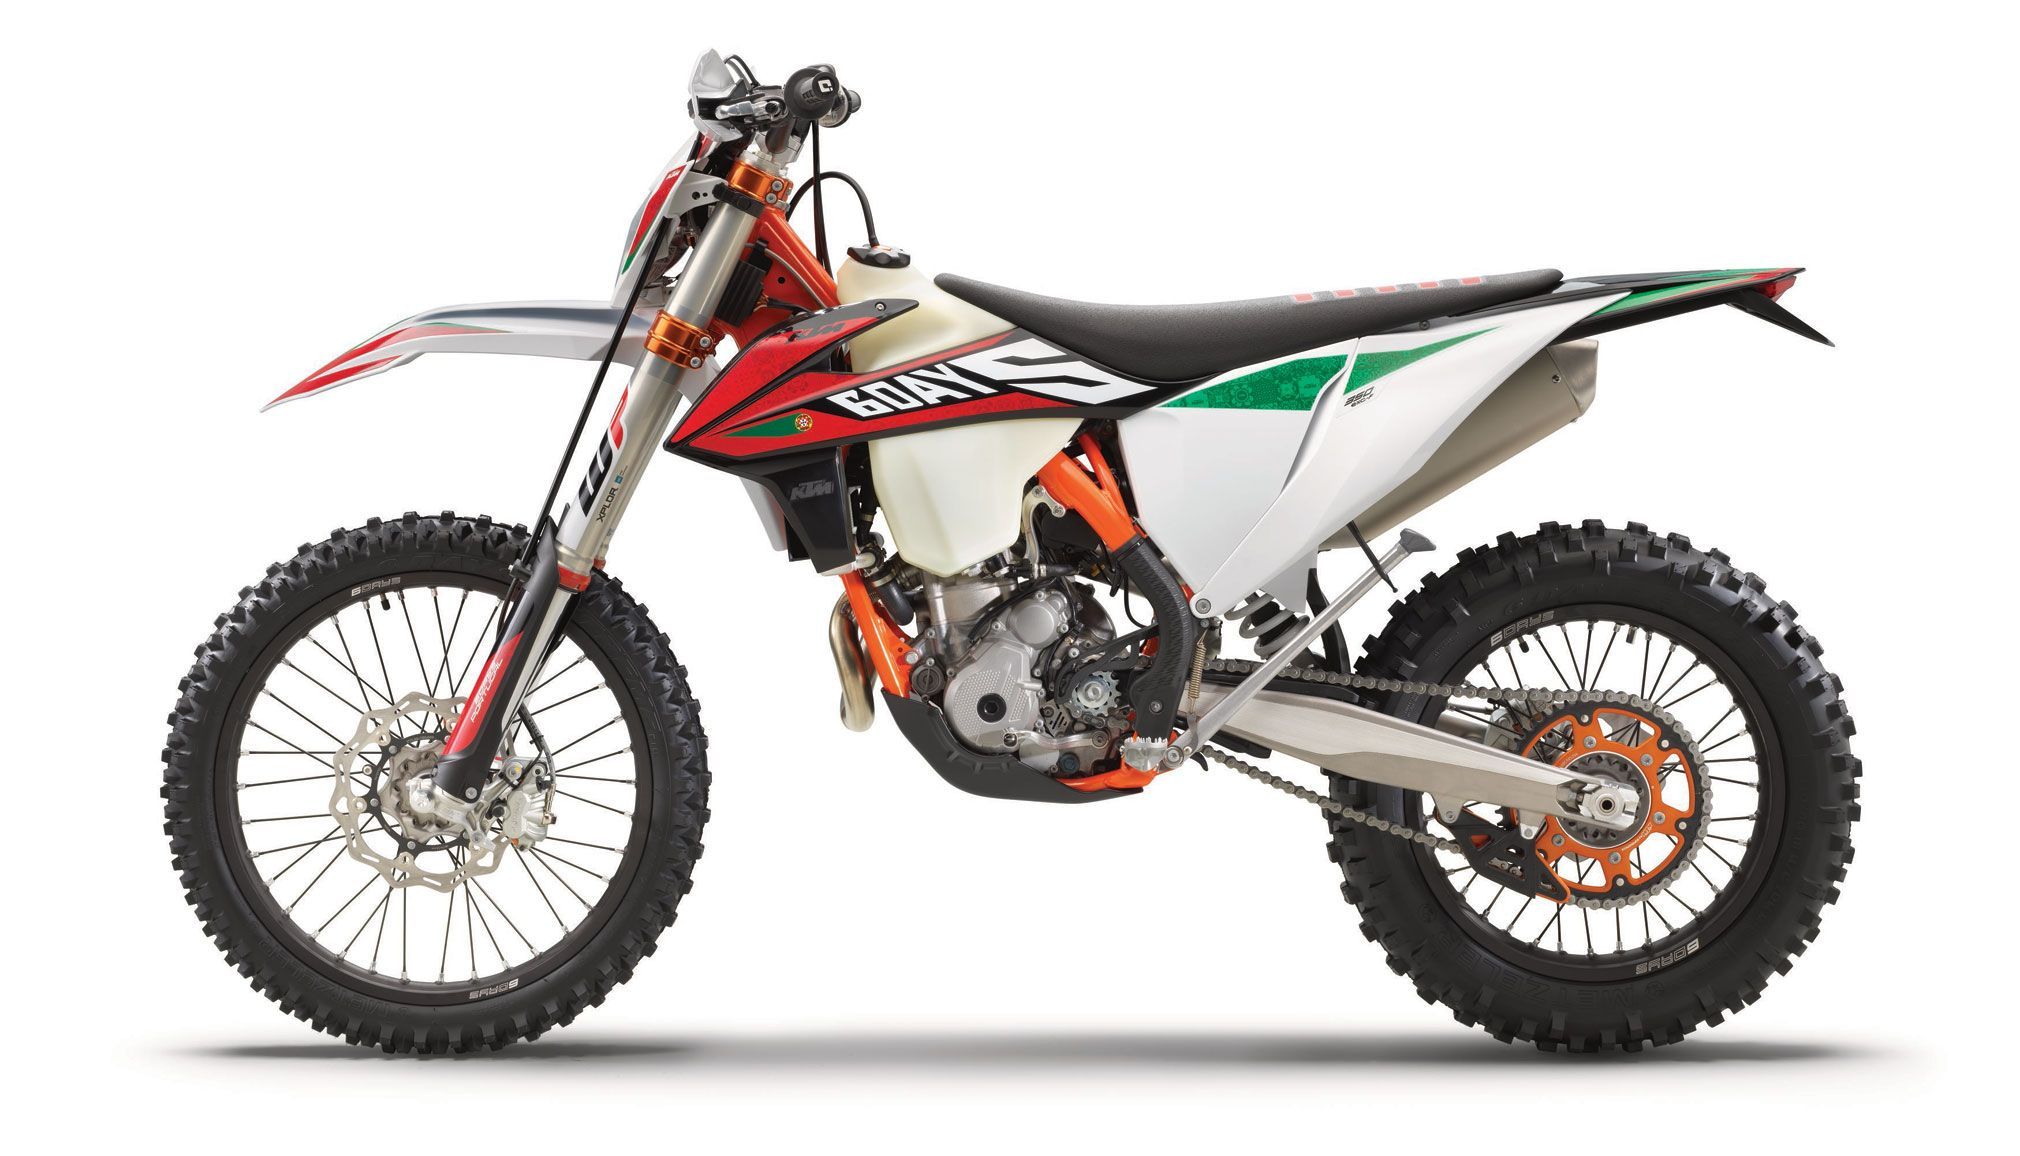 2020 KTM 350 EXCF Guide • Total Motorcycle Aviacion